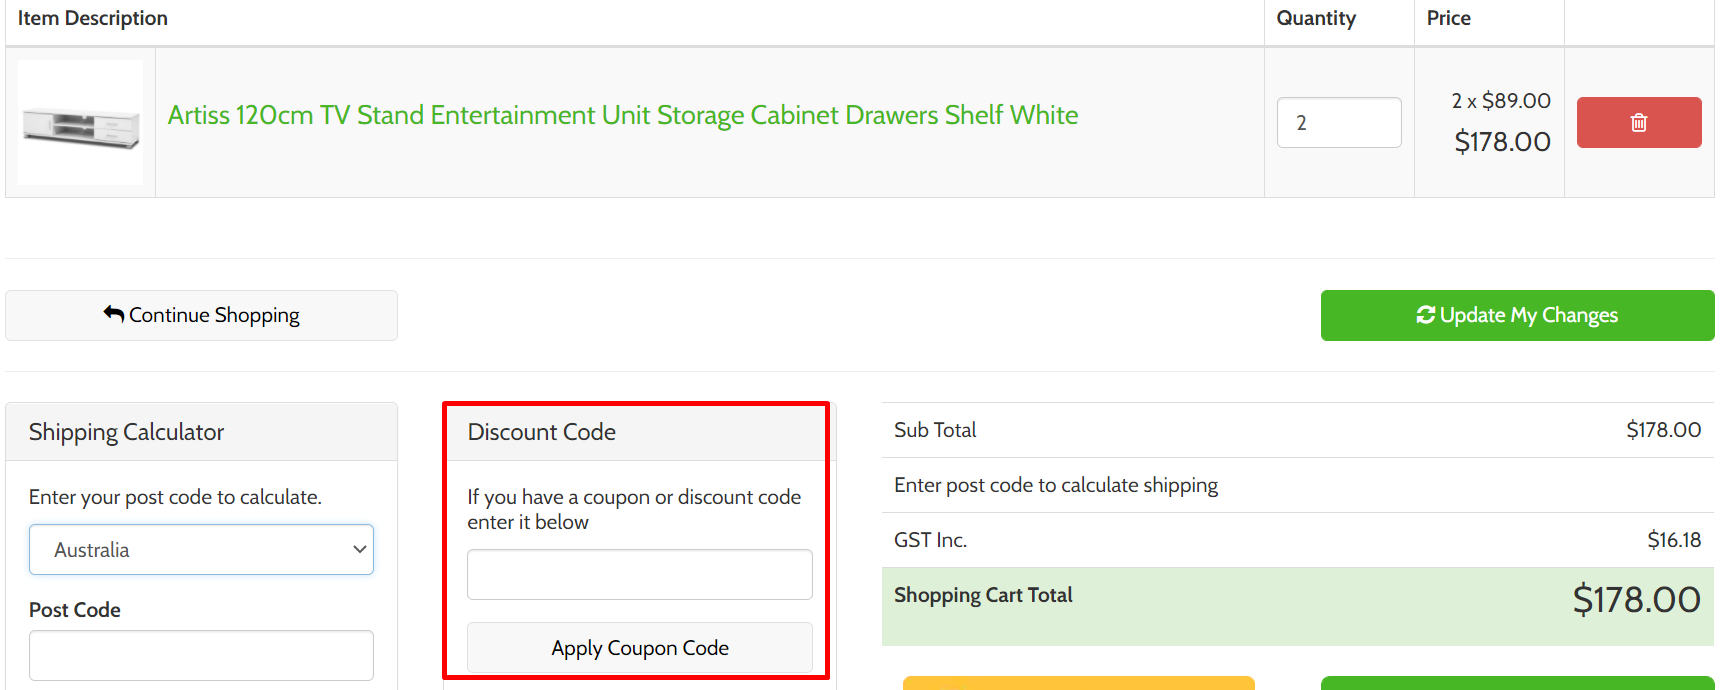 How do I use my Bargains Online discount code?